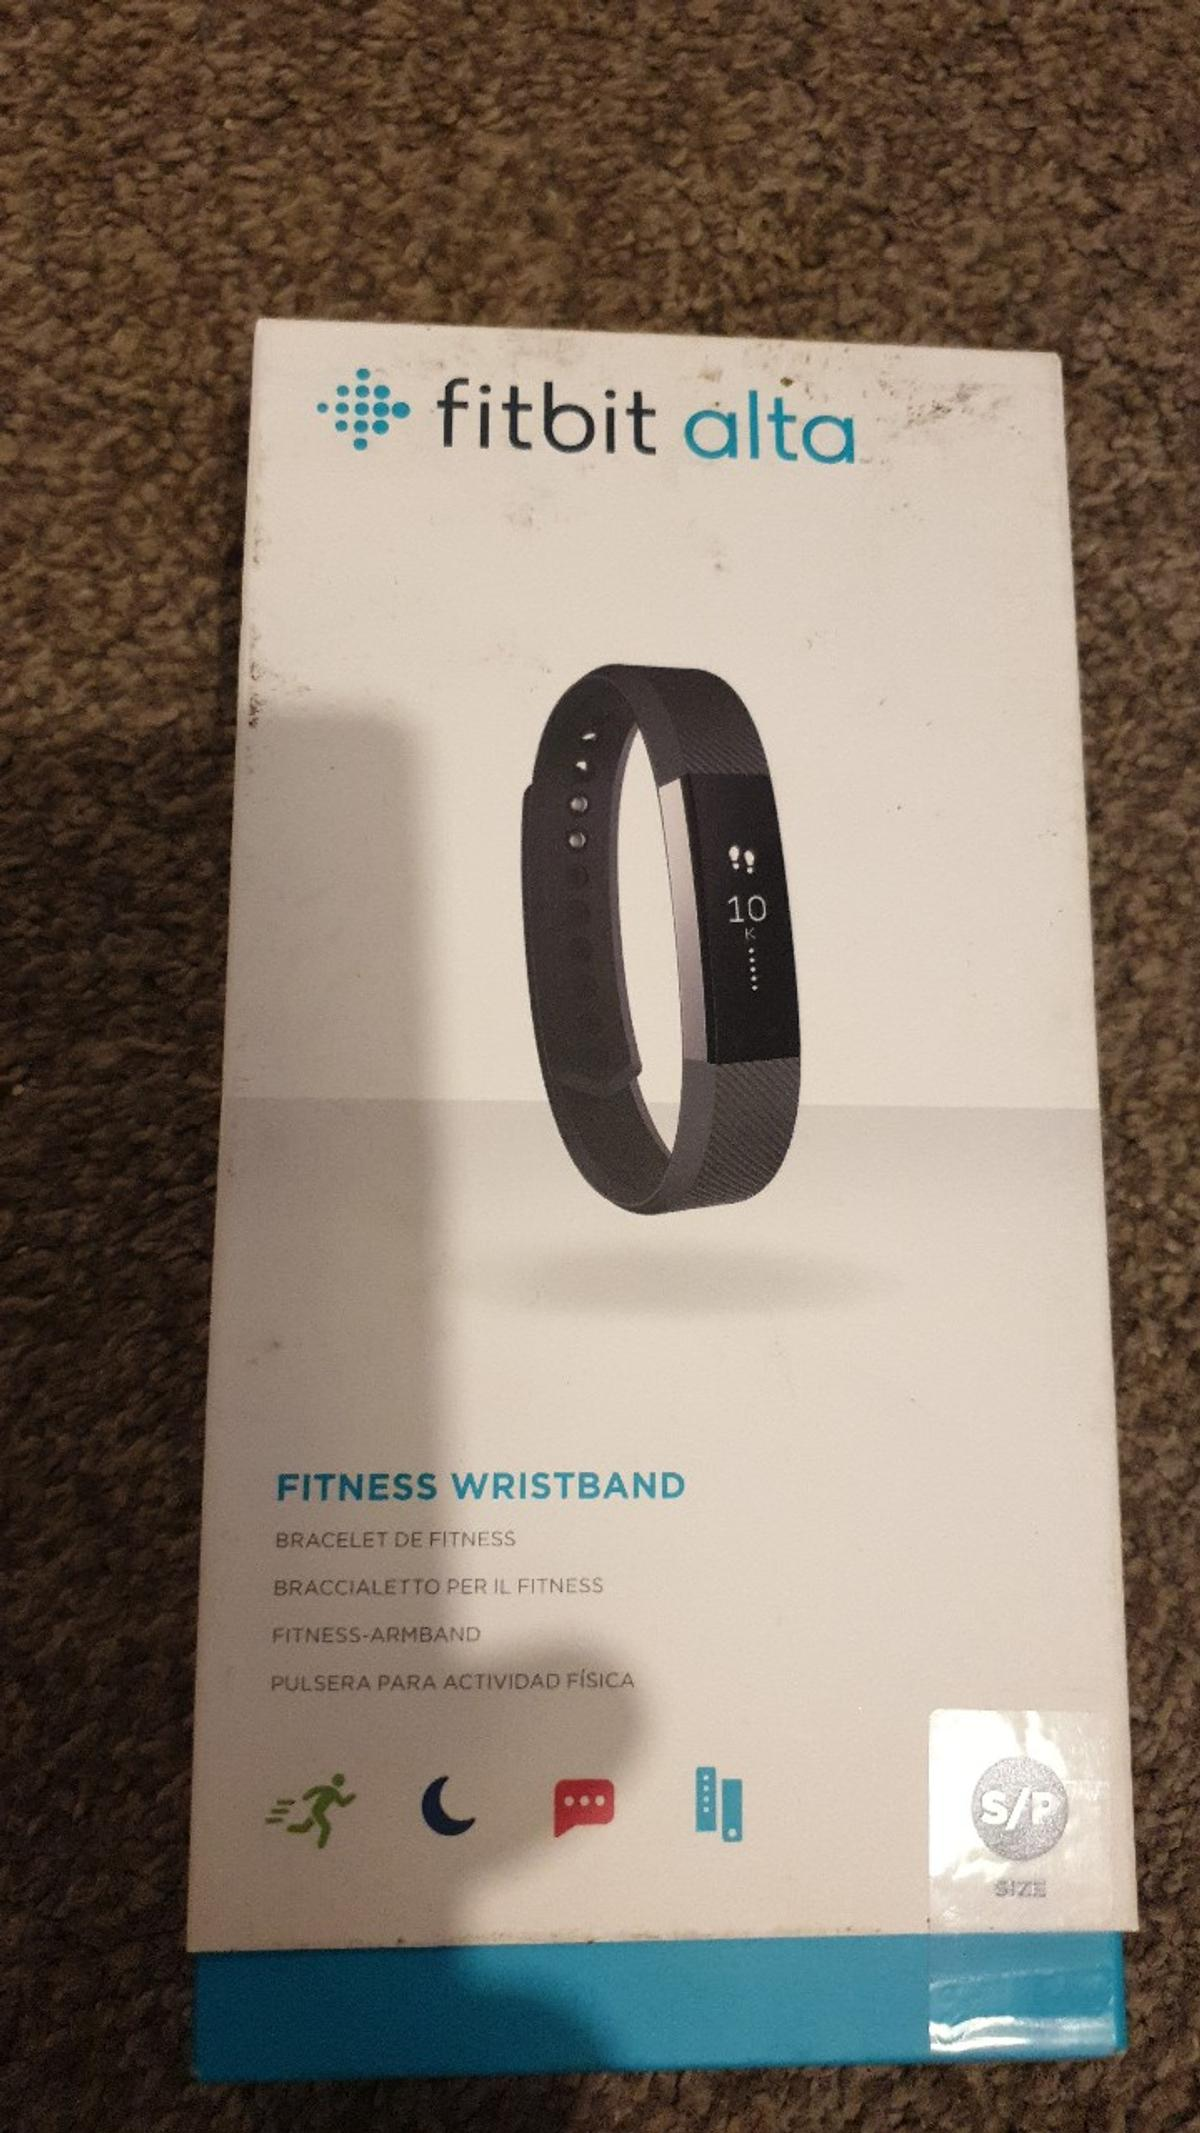 Fitbit alta fitness wristband, item is new and unsealed, never use.